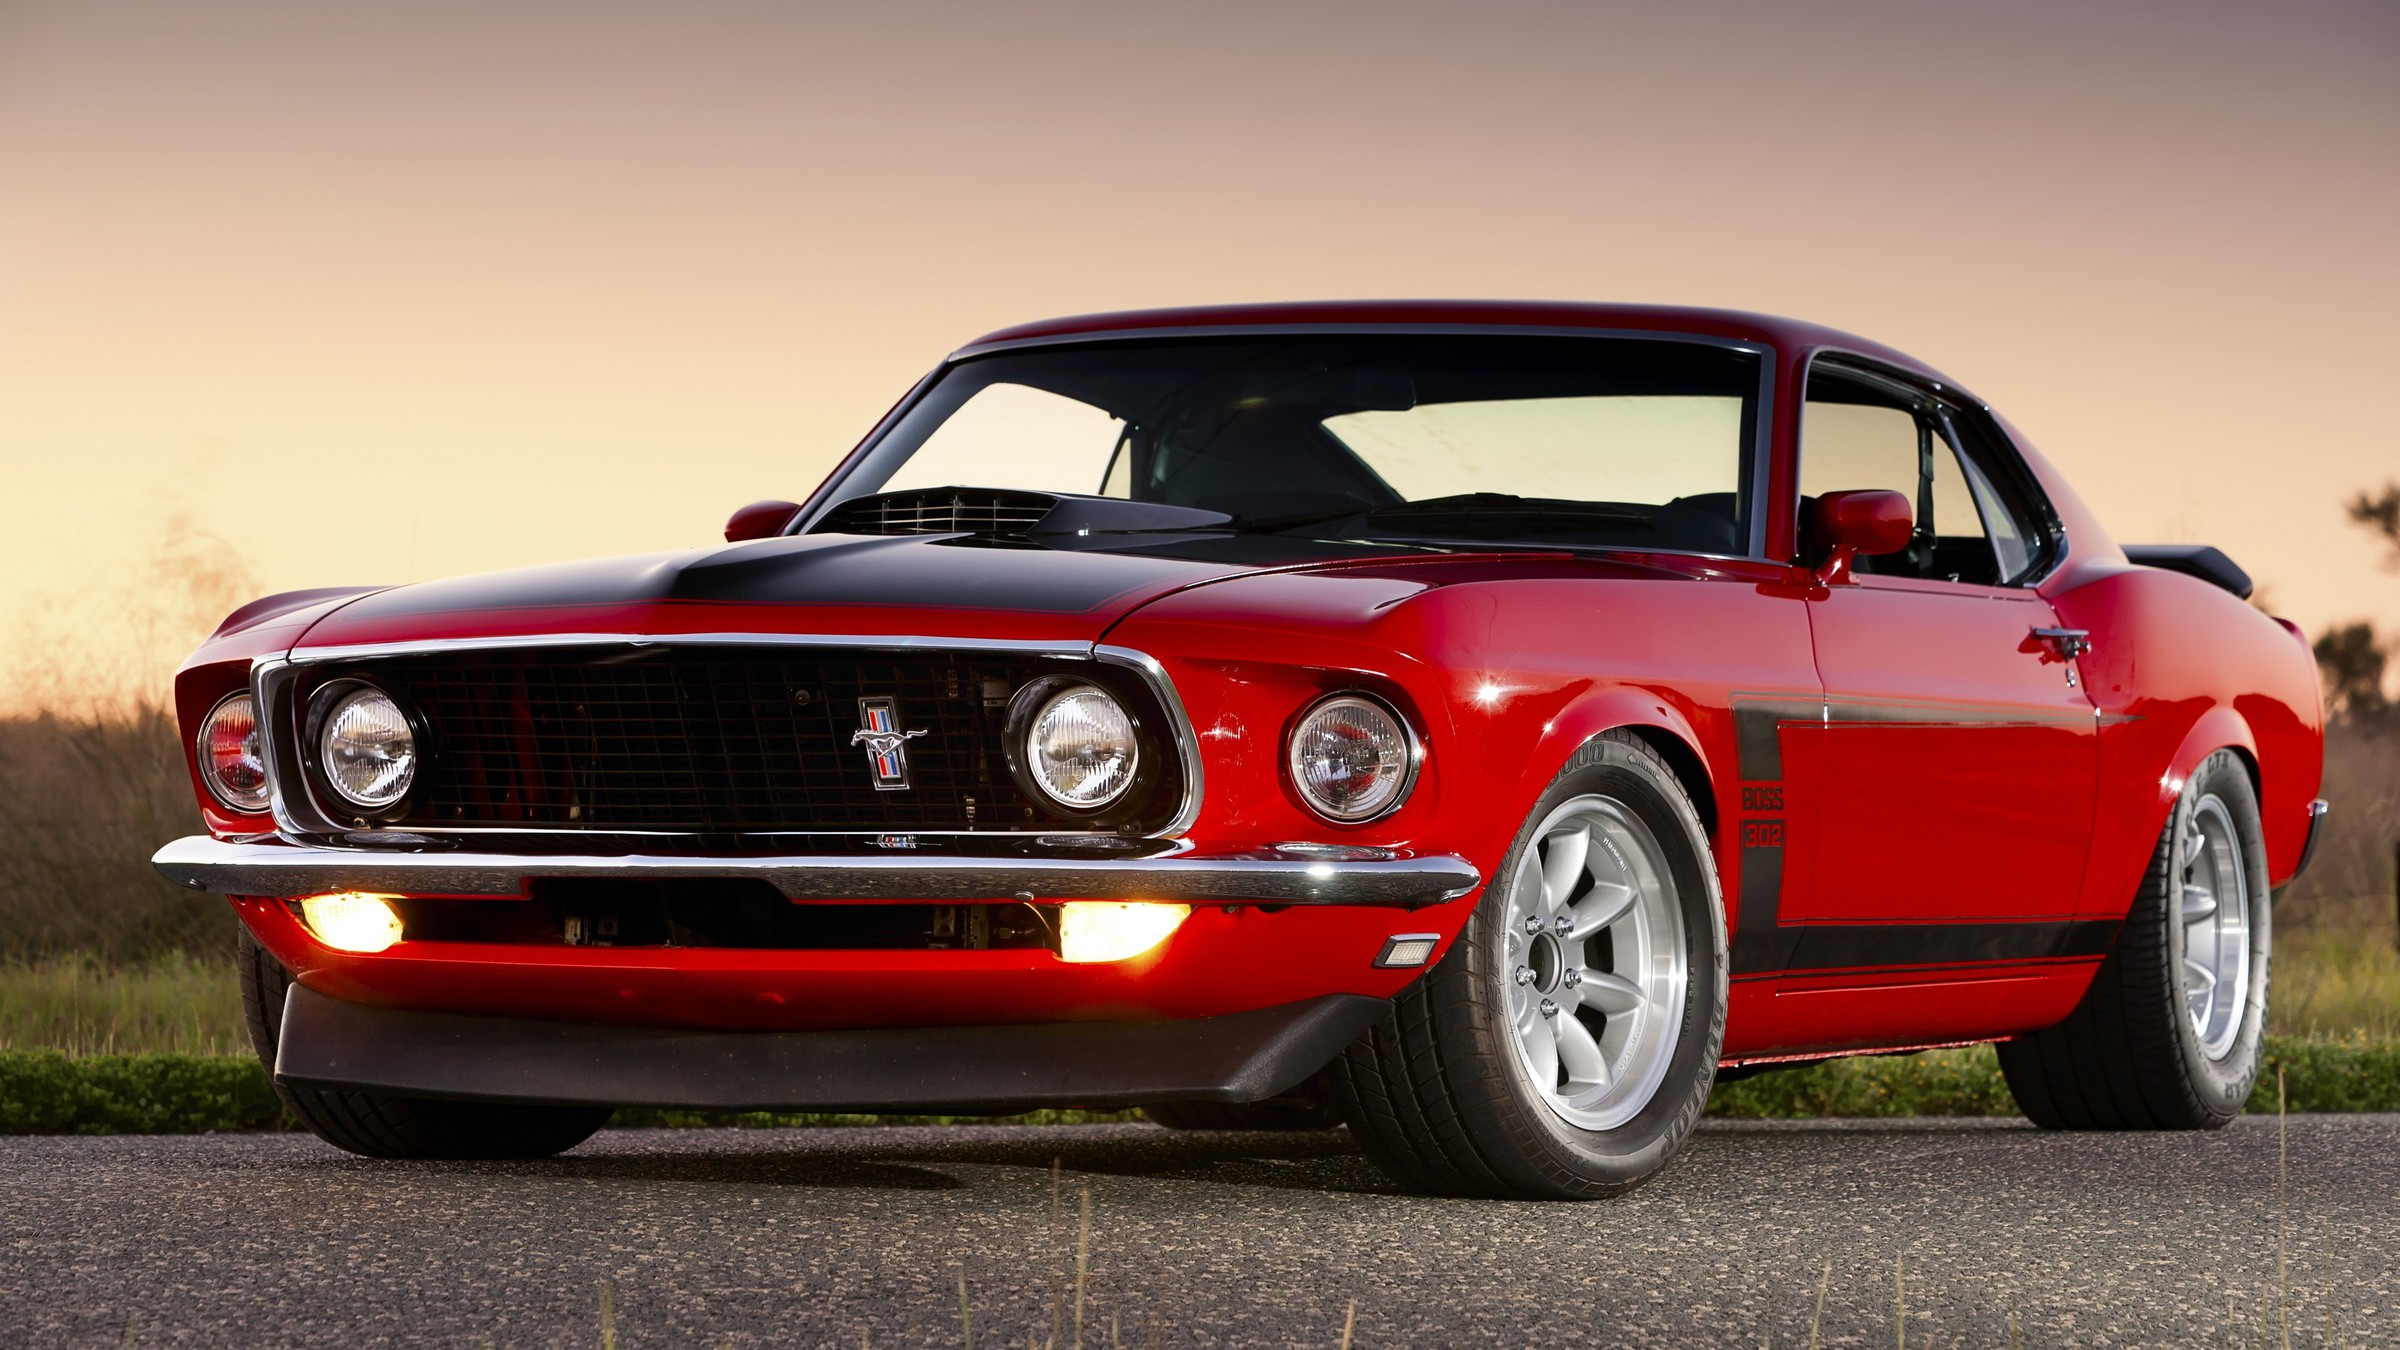 Cars Ford Mustang Boss 302 Muscle Car Wallpaper Allwallpaper In